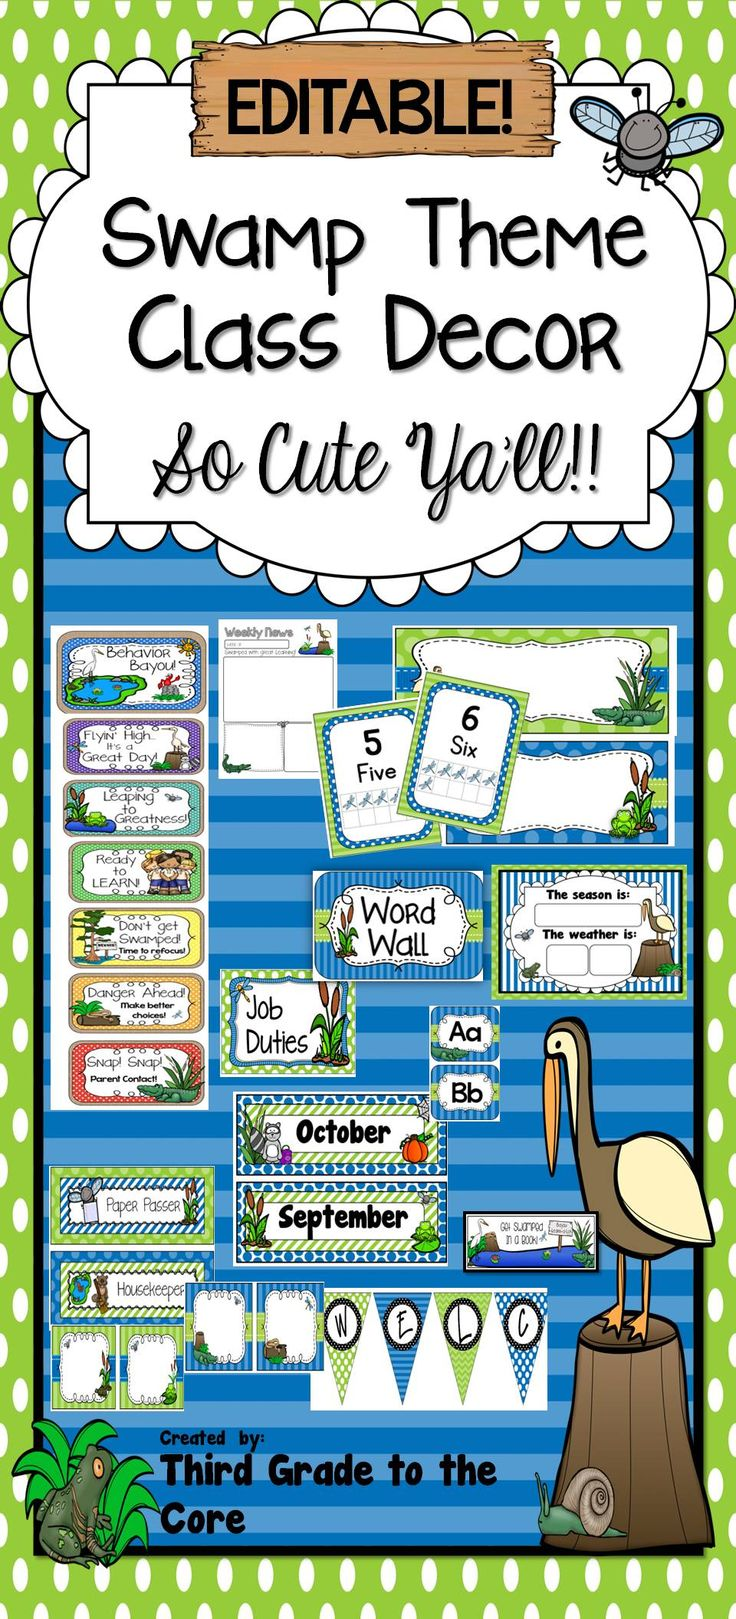 "How about a little ""CAJUN"" flair in your classroom? Make your class stand out!! The best part is that it is editable!"